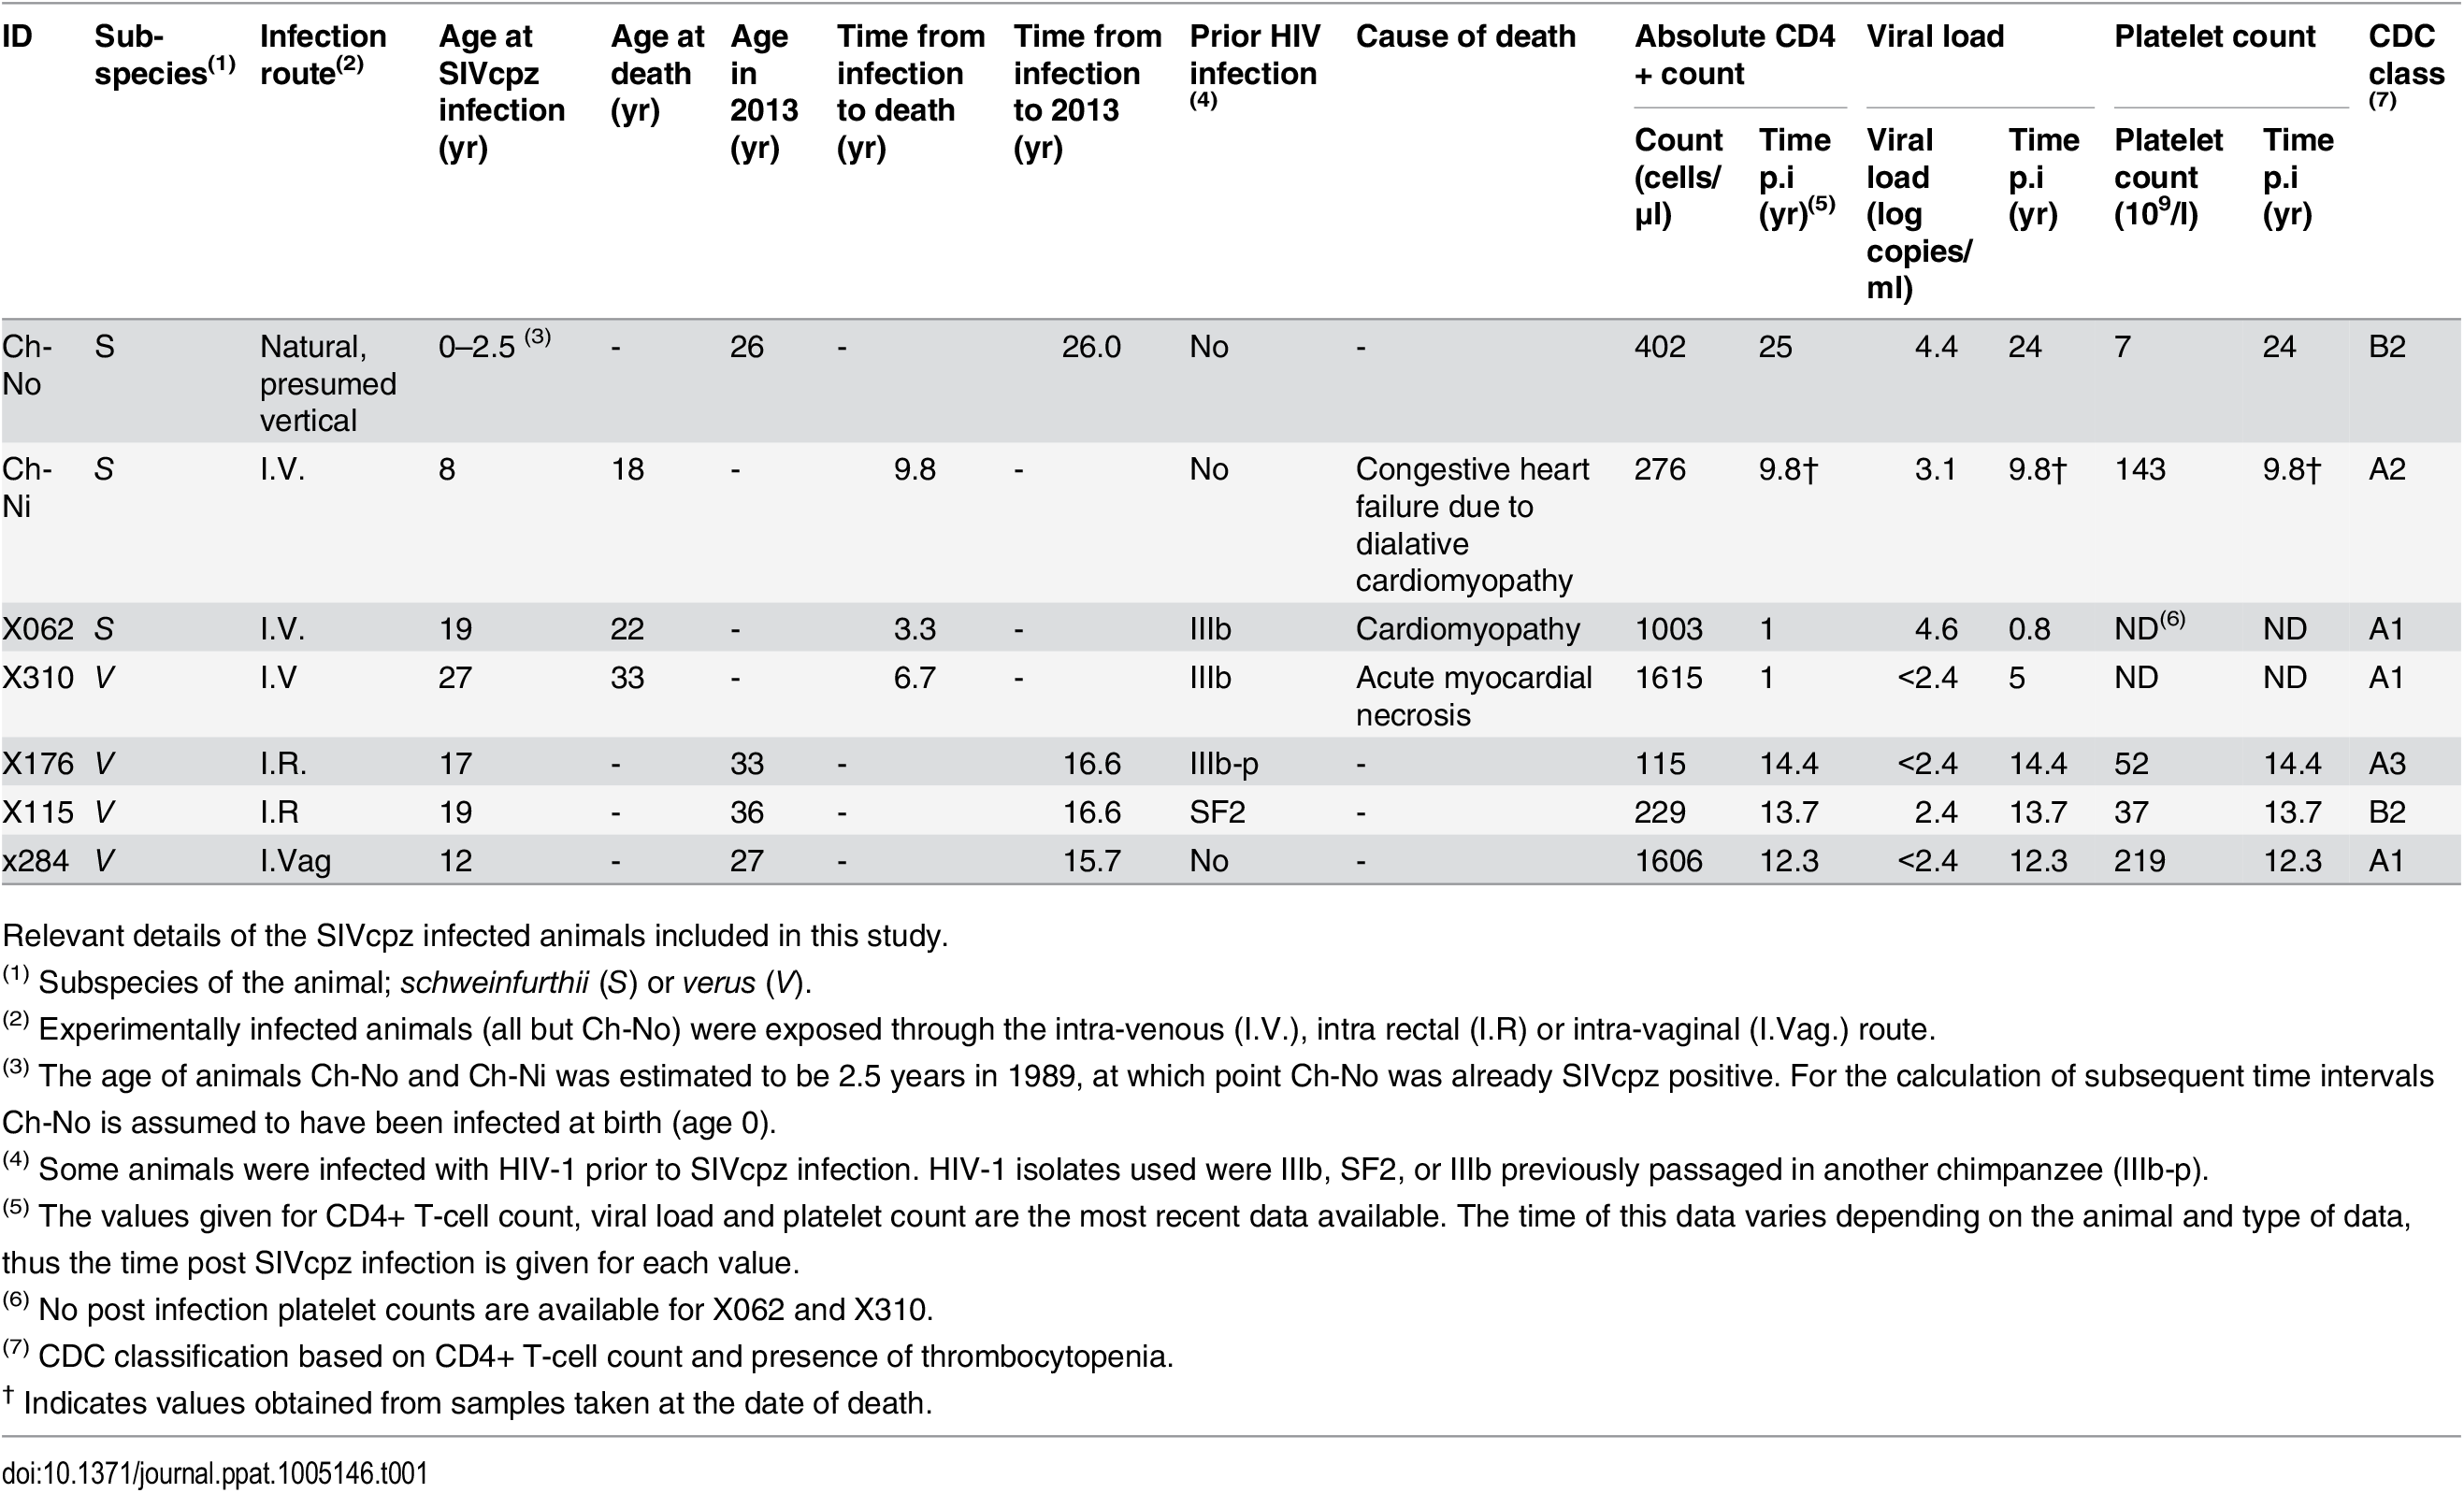 Characteristics of the SIVcpz infected cohort.